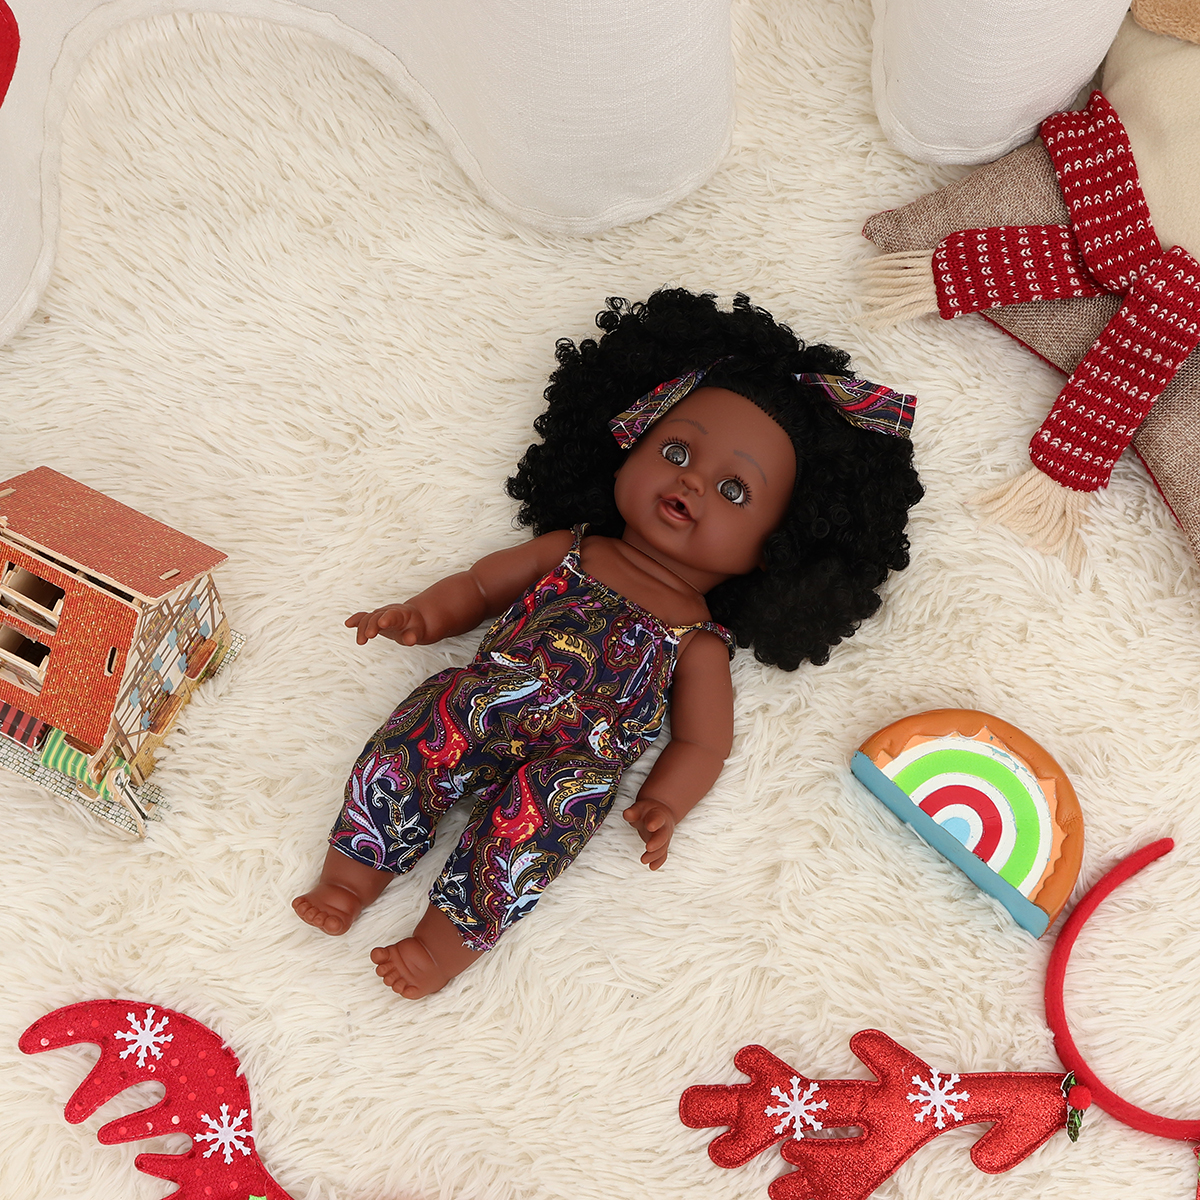 12Inch Soft Silicone Vinyl PVC Black Baby Fashion Play Doll Rotate 360° African Girl Perfect Reborn Doll Toy for Birthday Gift - Photo: 10